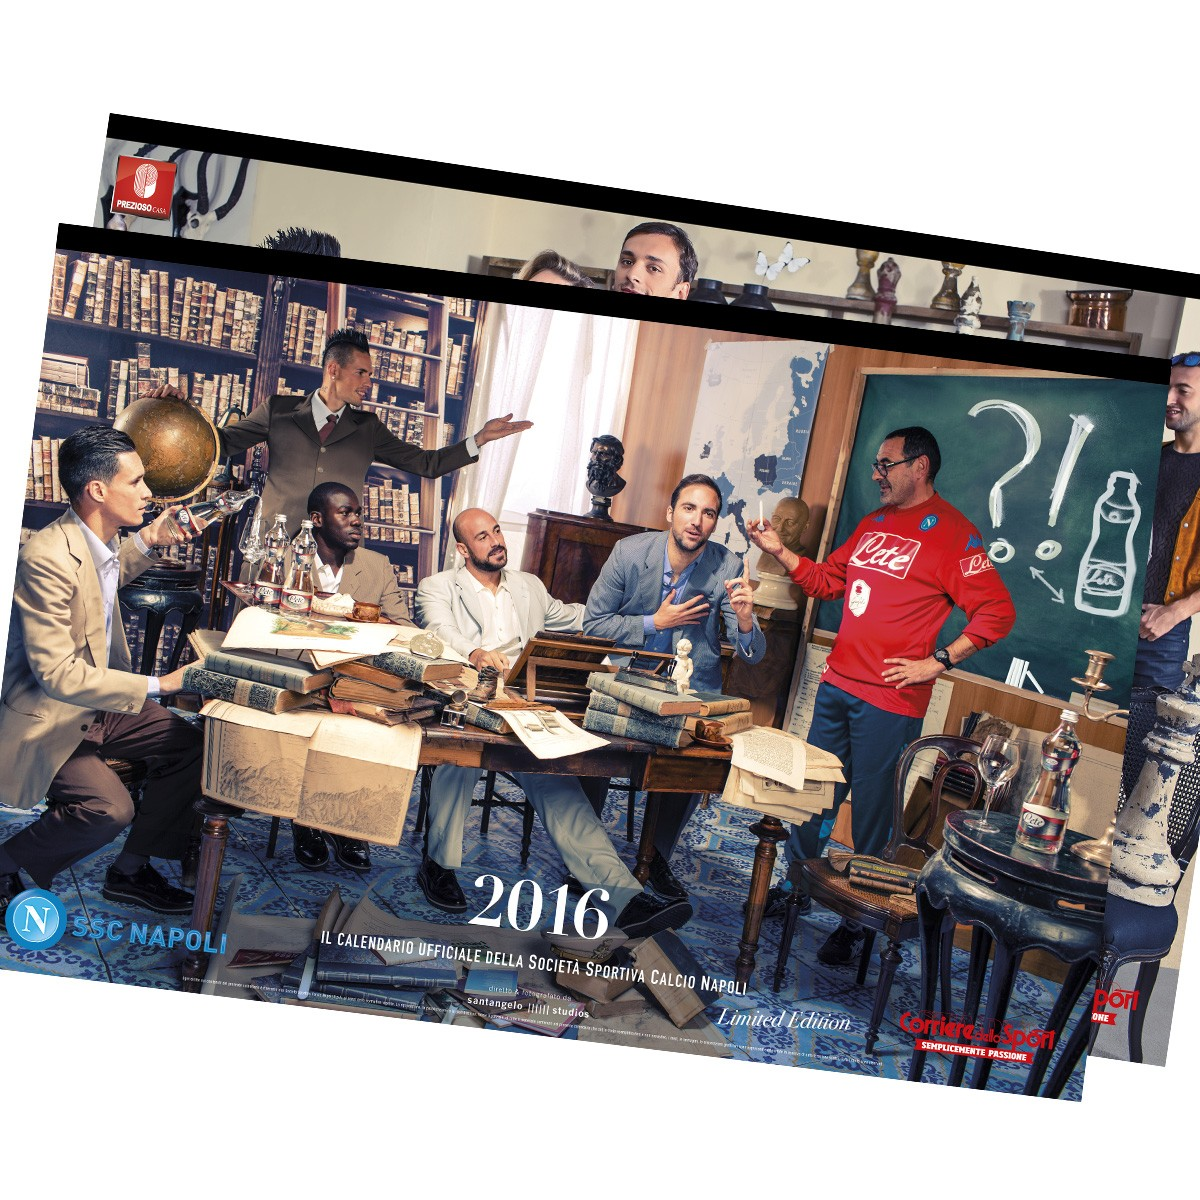 http://store.sscnapoli.it/2733/ssc-napoli-calendario-limited-edition-2016.jpg